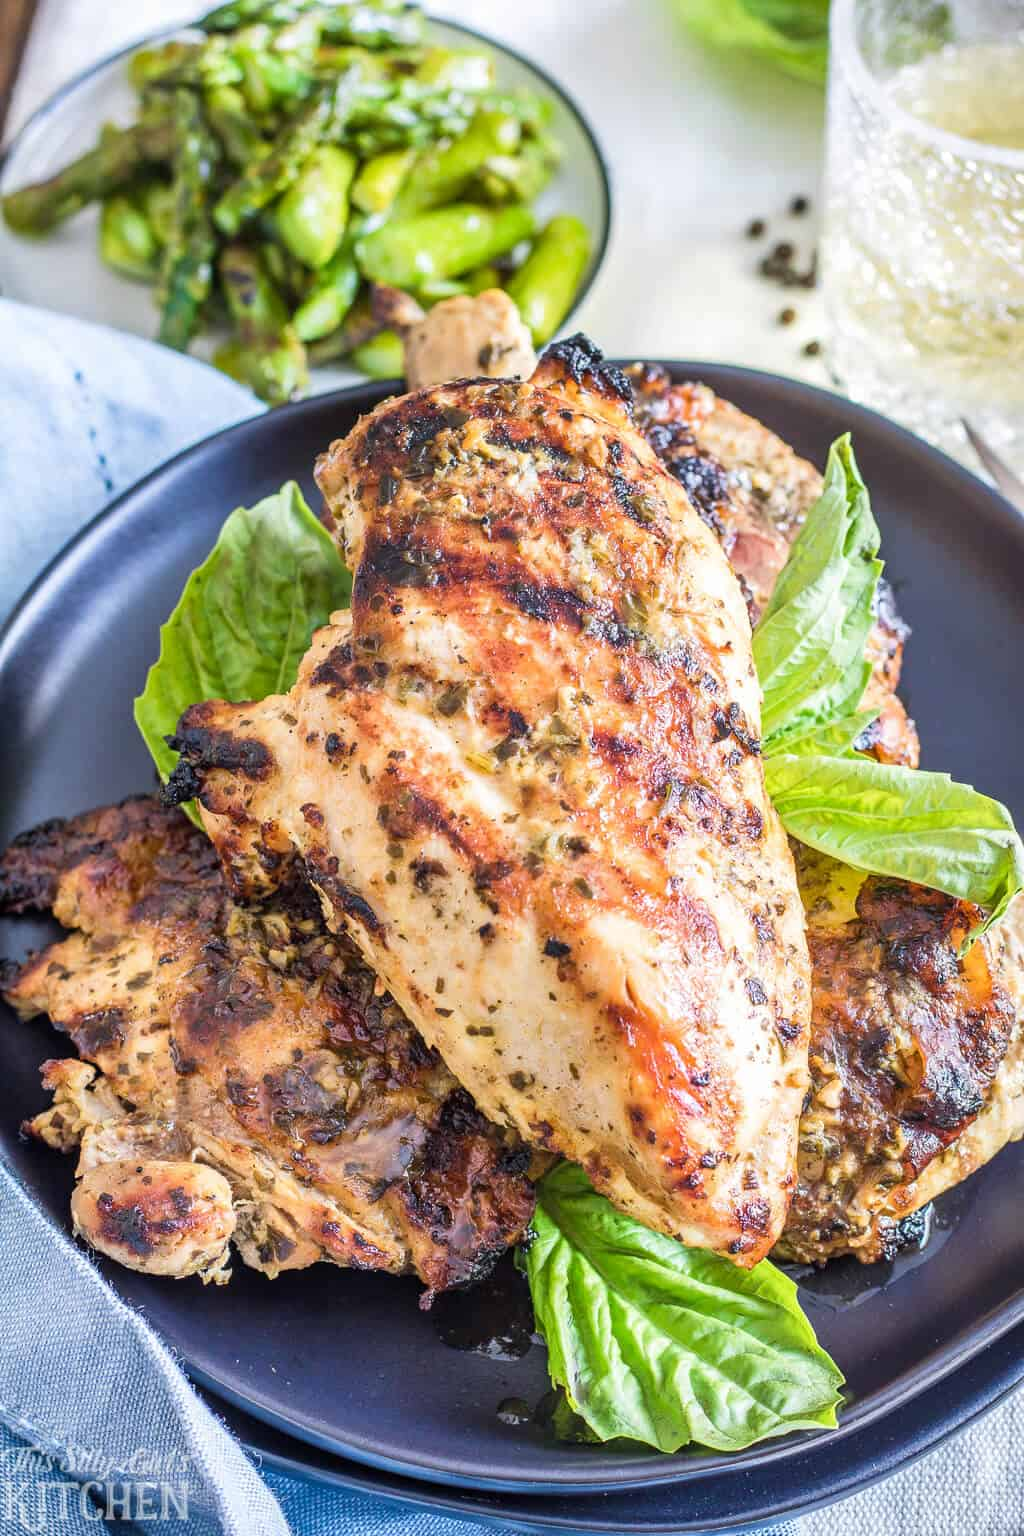 All-Purpose Pesto Chicken, an amazing pesto marinade for grilled chicken, a perfect addition to salads, pasta, and more! #recipe from thissillygirlskitchen.com #pestochicken #chicken #grilledchicken #chickenmarinade #pestomarinade